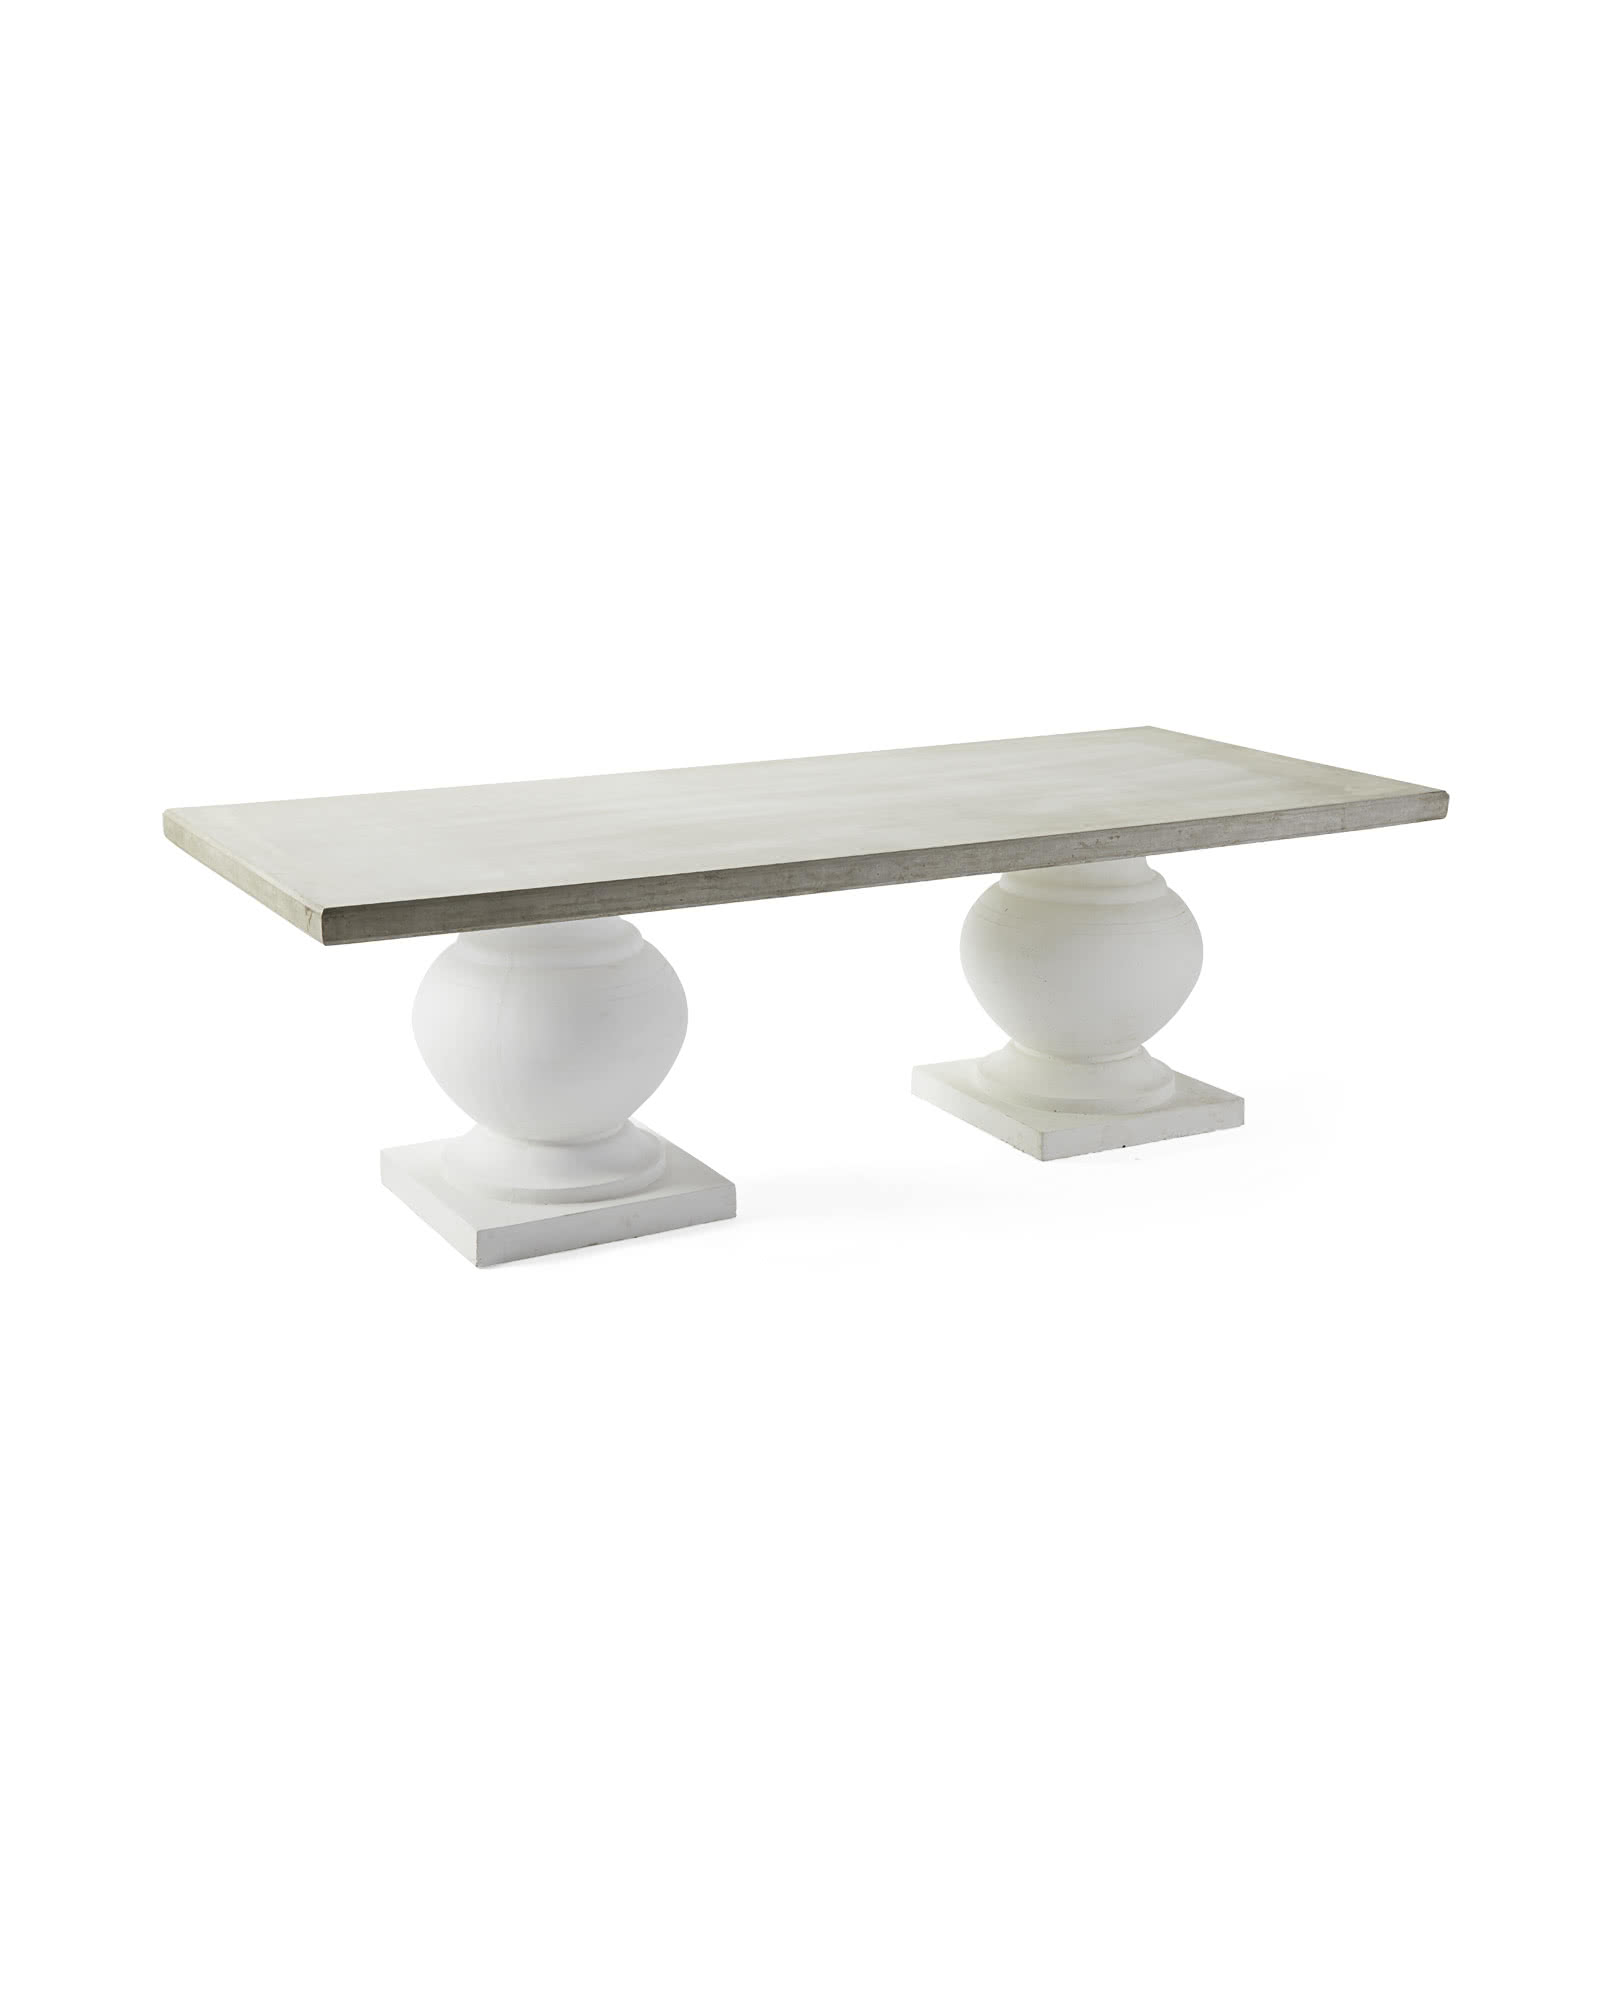 Terrace Dining Table, Fog/White